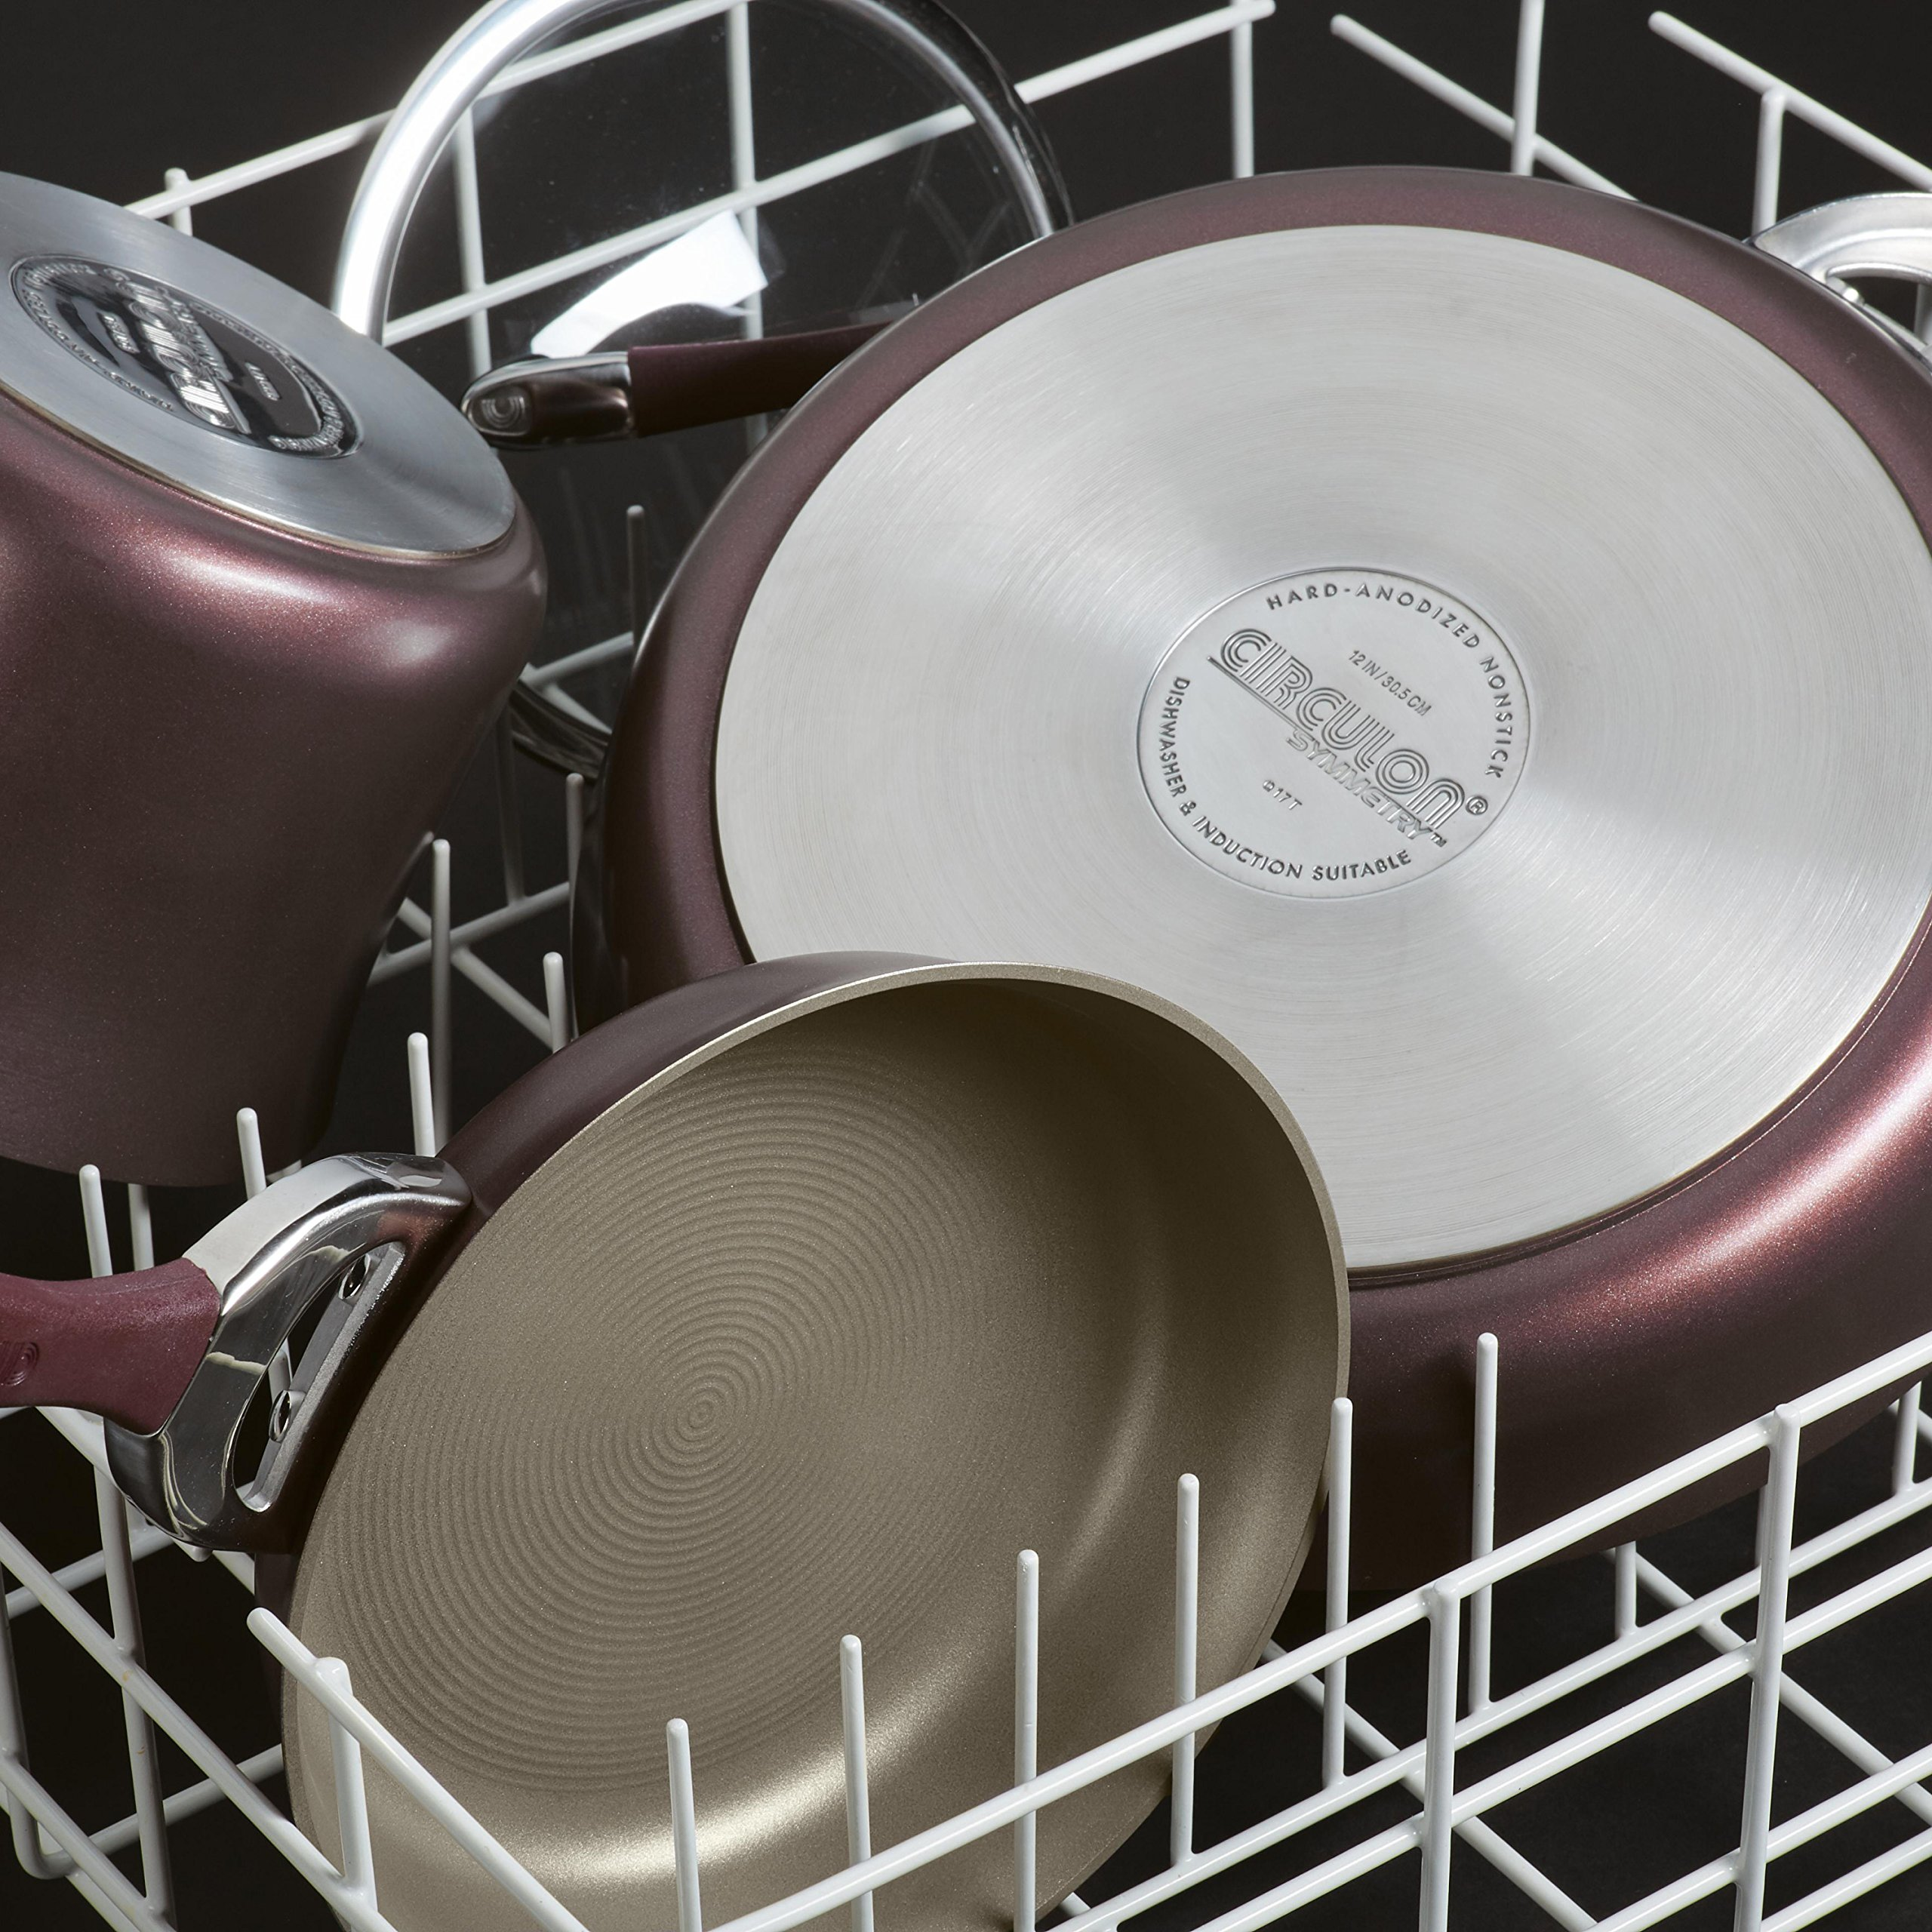 Circulon Symmetry Hard-Anodized Nonstick 10-Inch and 12-Inch French Skillets, Merlot by Circulon (Image #2)